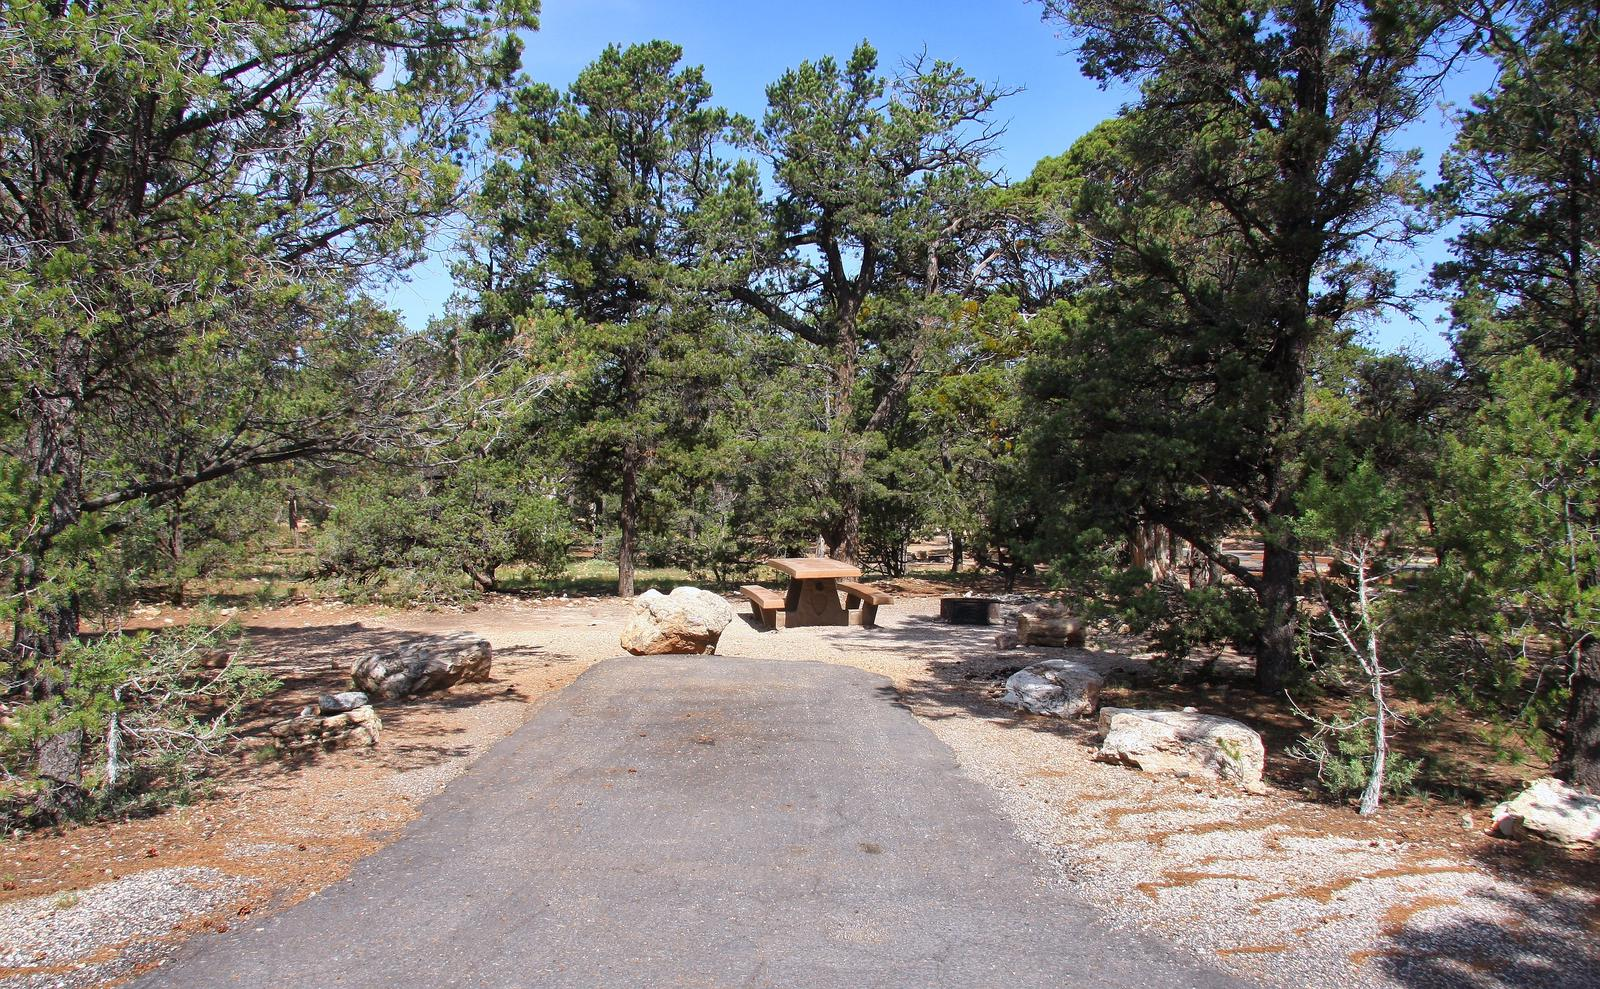 Picnic table, fire pit, and parking spot, Mather CampgroundPicnic table, fire pit, and parking spot for Maple Loop 198, Mather Campground